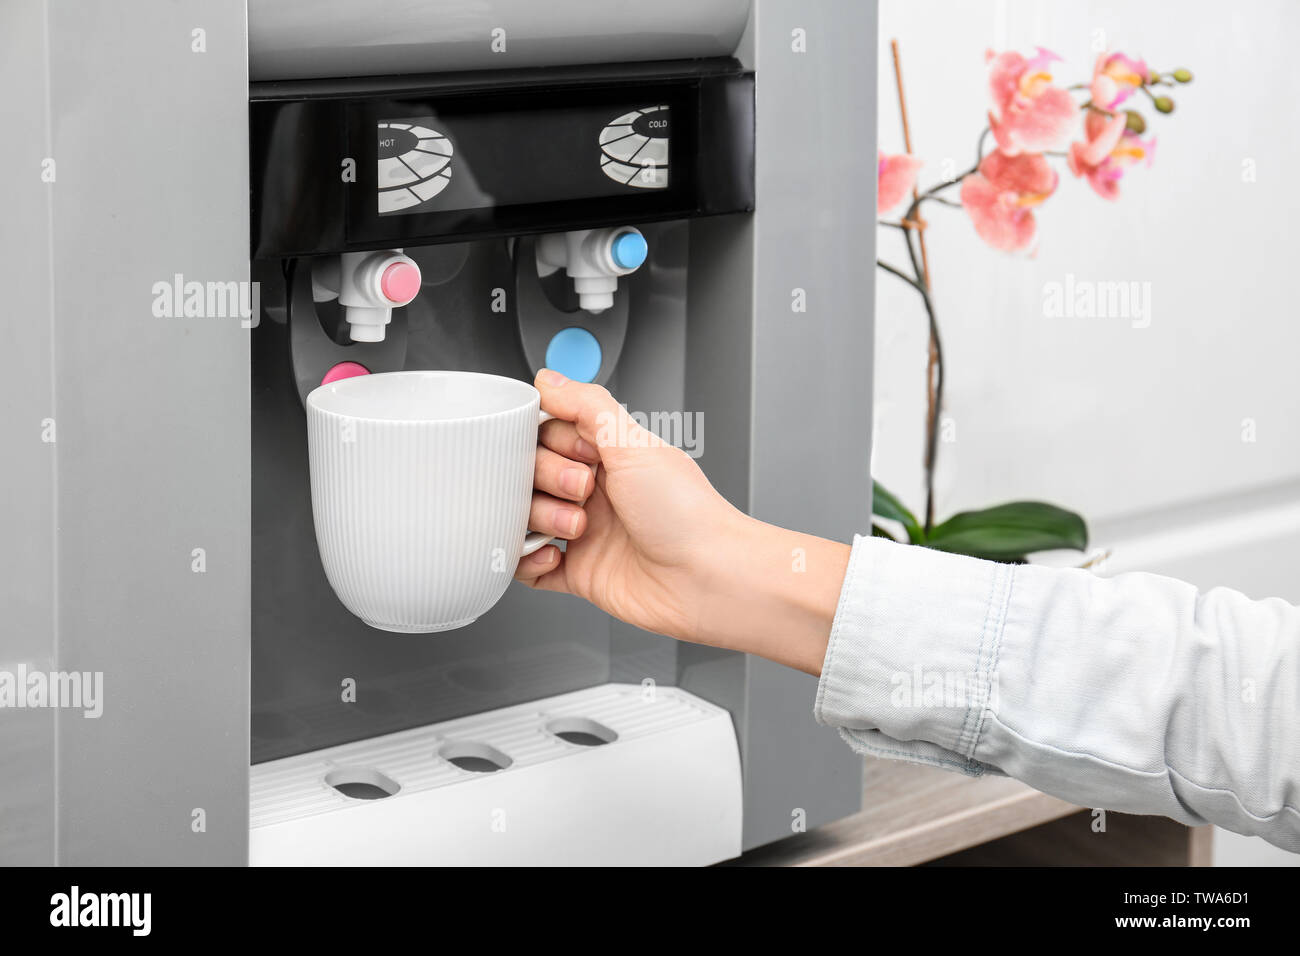 Woman filling cup from water cooler, closeup - Stock Image